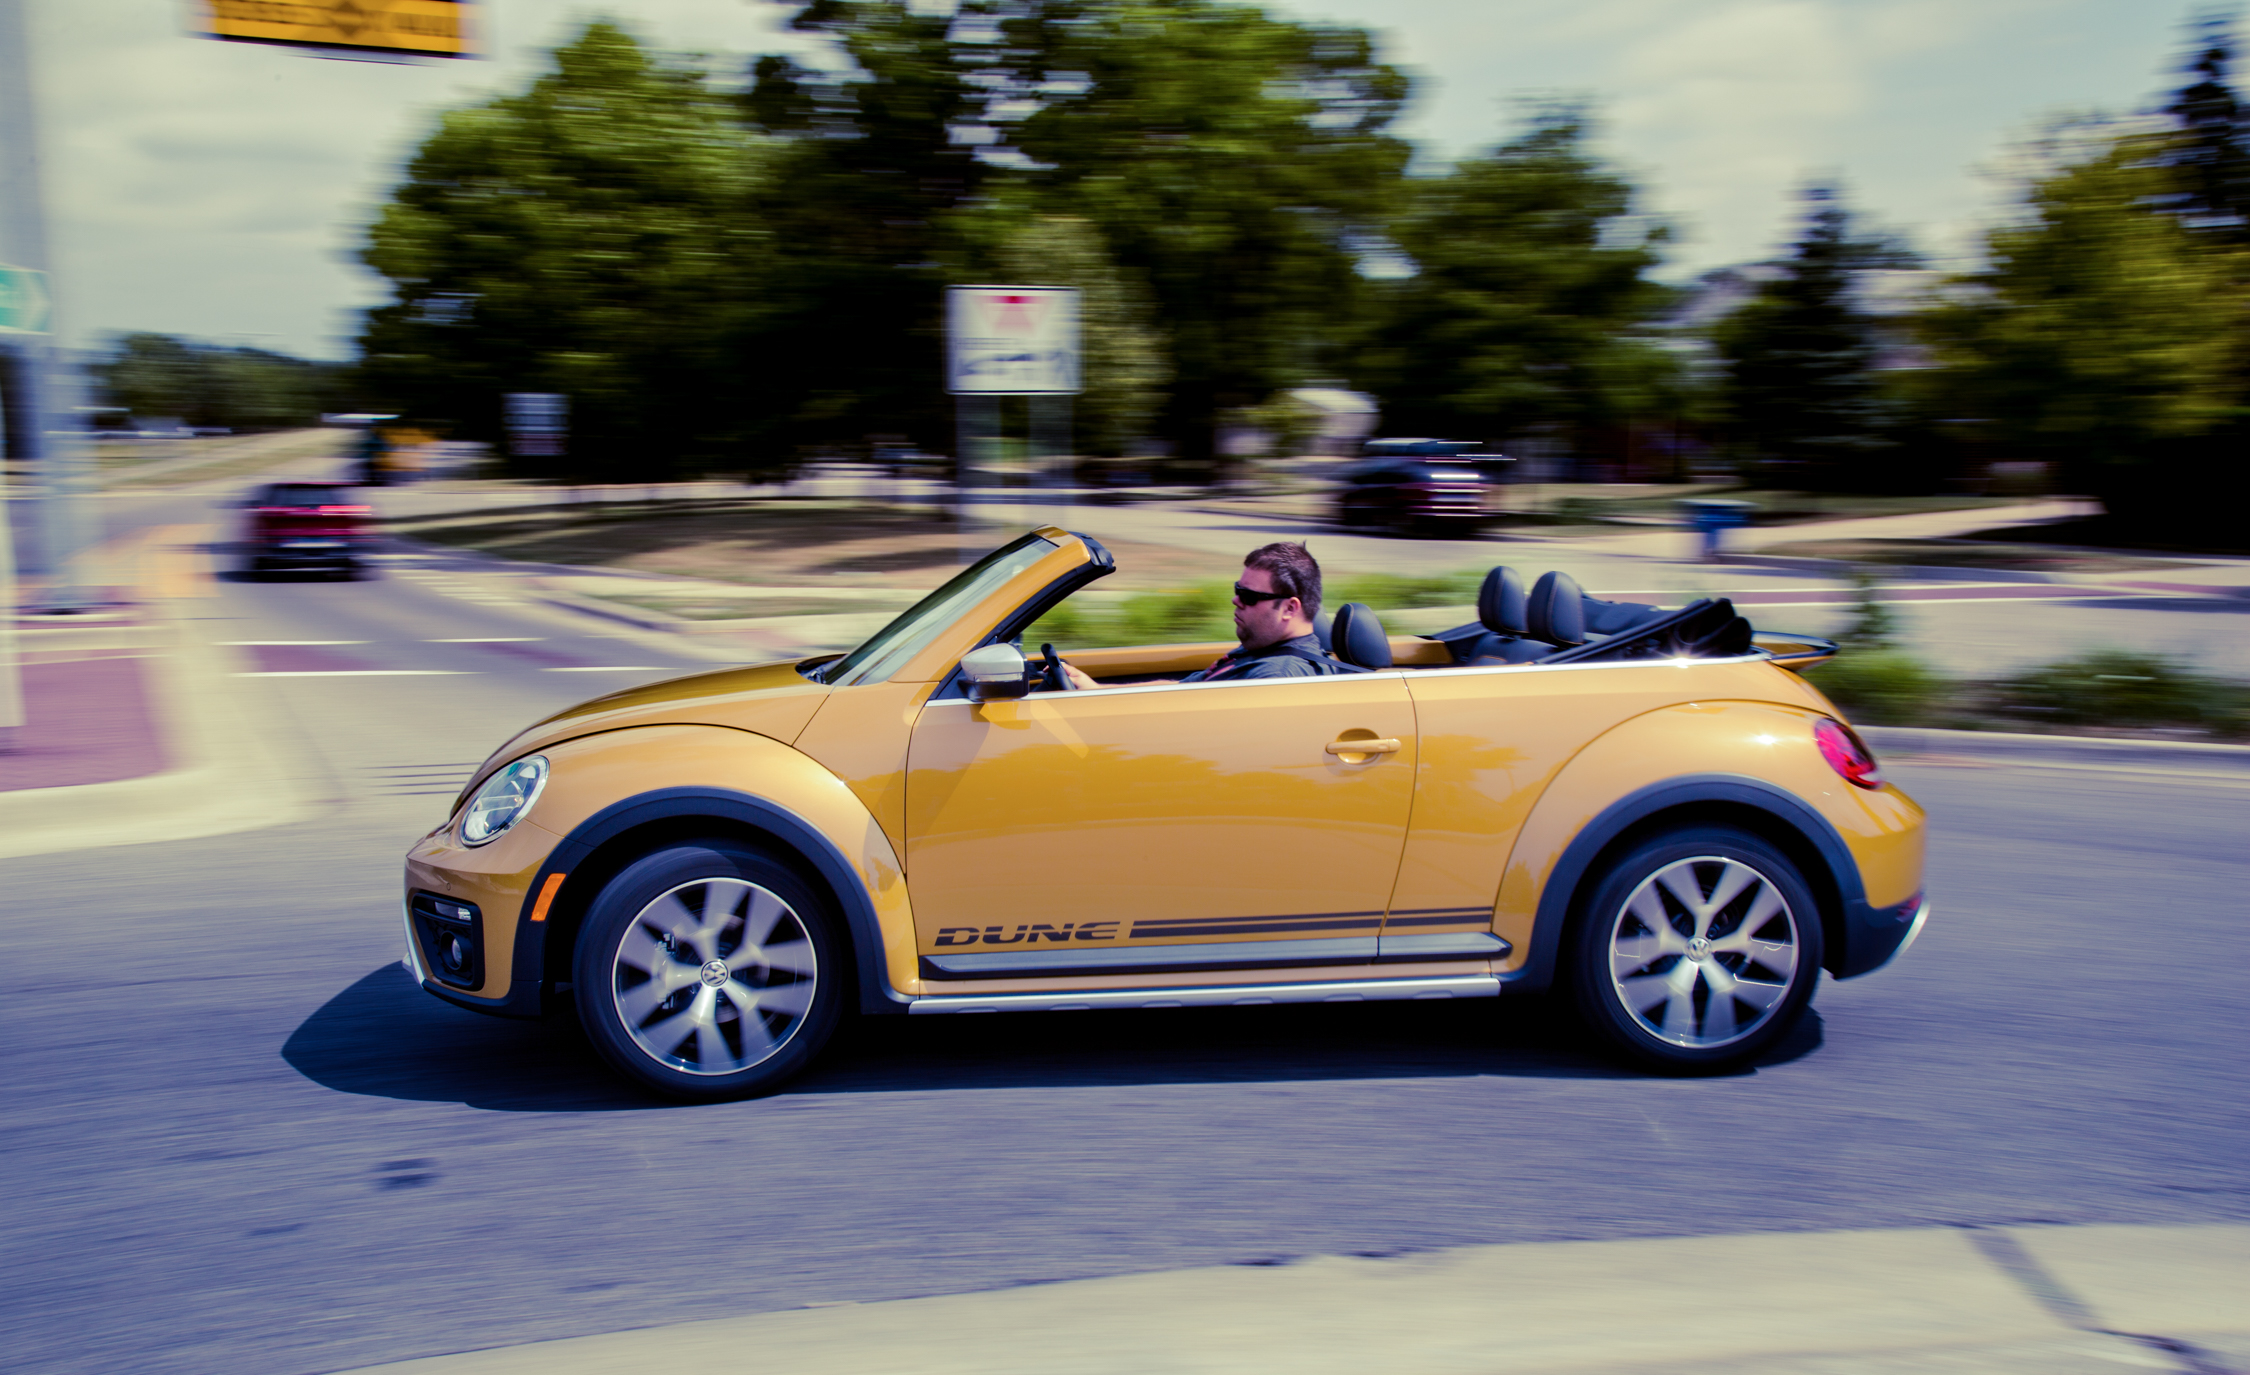 2017 Volkswagen Beetle Dune Convertible Test Drive Side View (Photo 17 of 19)